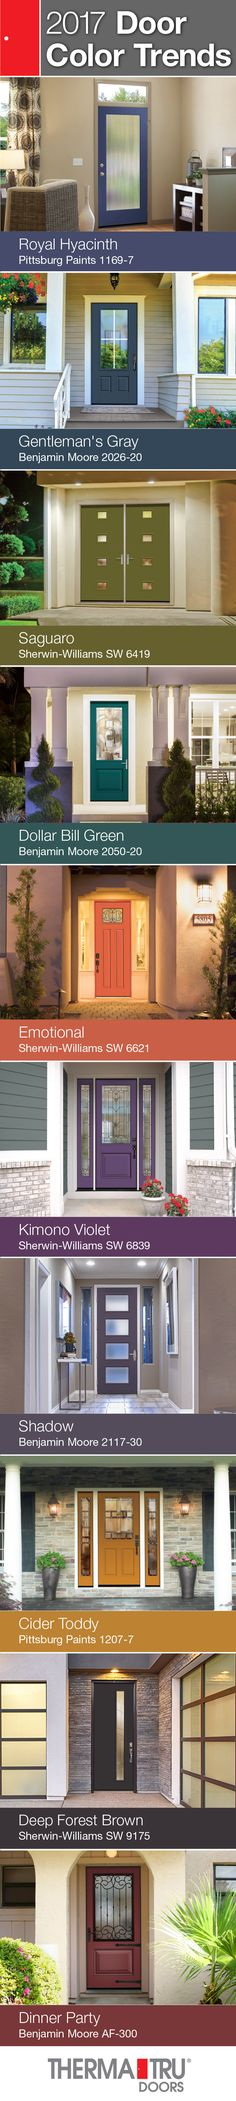 Therma-Tru strives to offer its customers up-to-date products with options that meet current trends along with resources to learn how to keep up with those trends. Door color trends are provided to help homeowners decide which door color fits their home and personality. View Therma-Tru's profile for all 10 of the 2017 Door Colors.